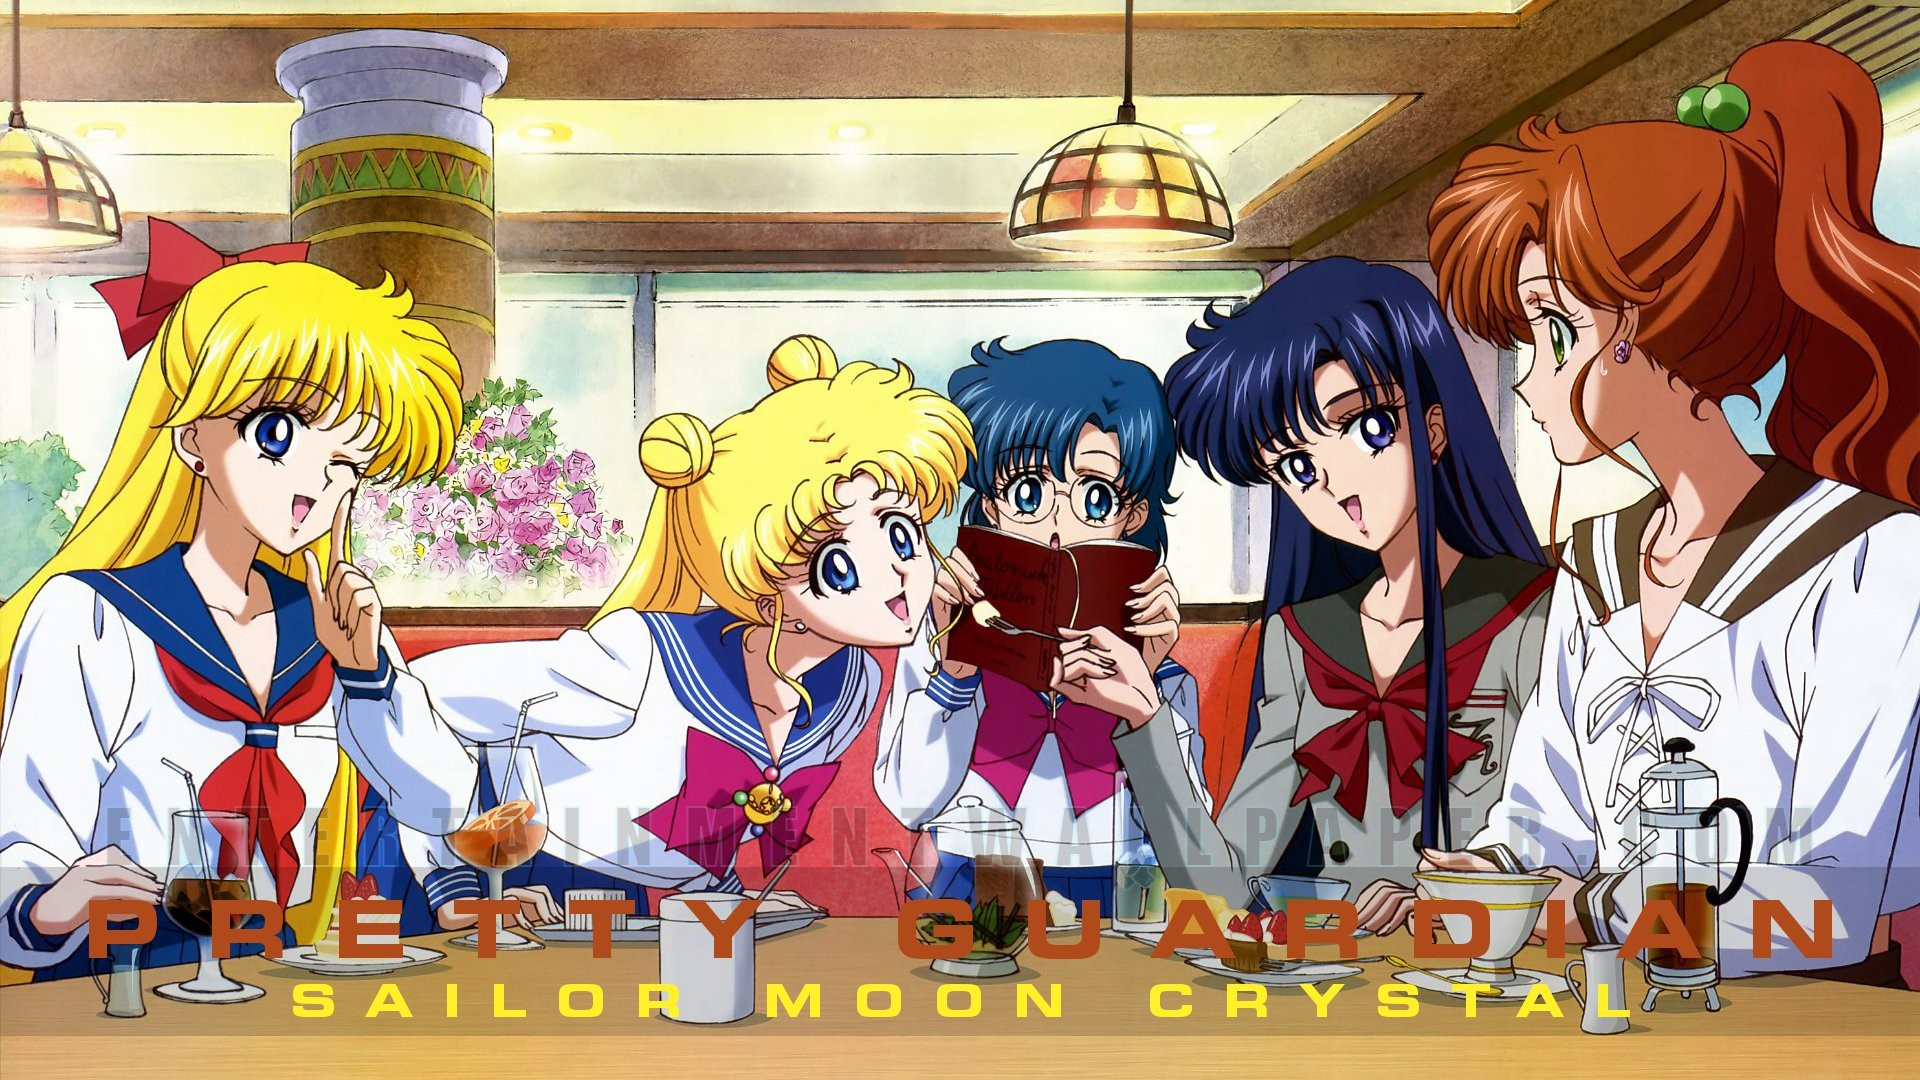 1920x1080 Pretty Guardian Sailor Moon Crystal Wallpaper - Original size, download now.